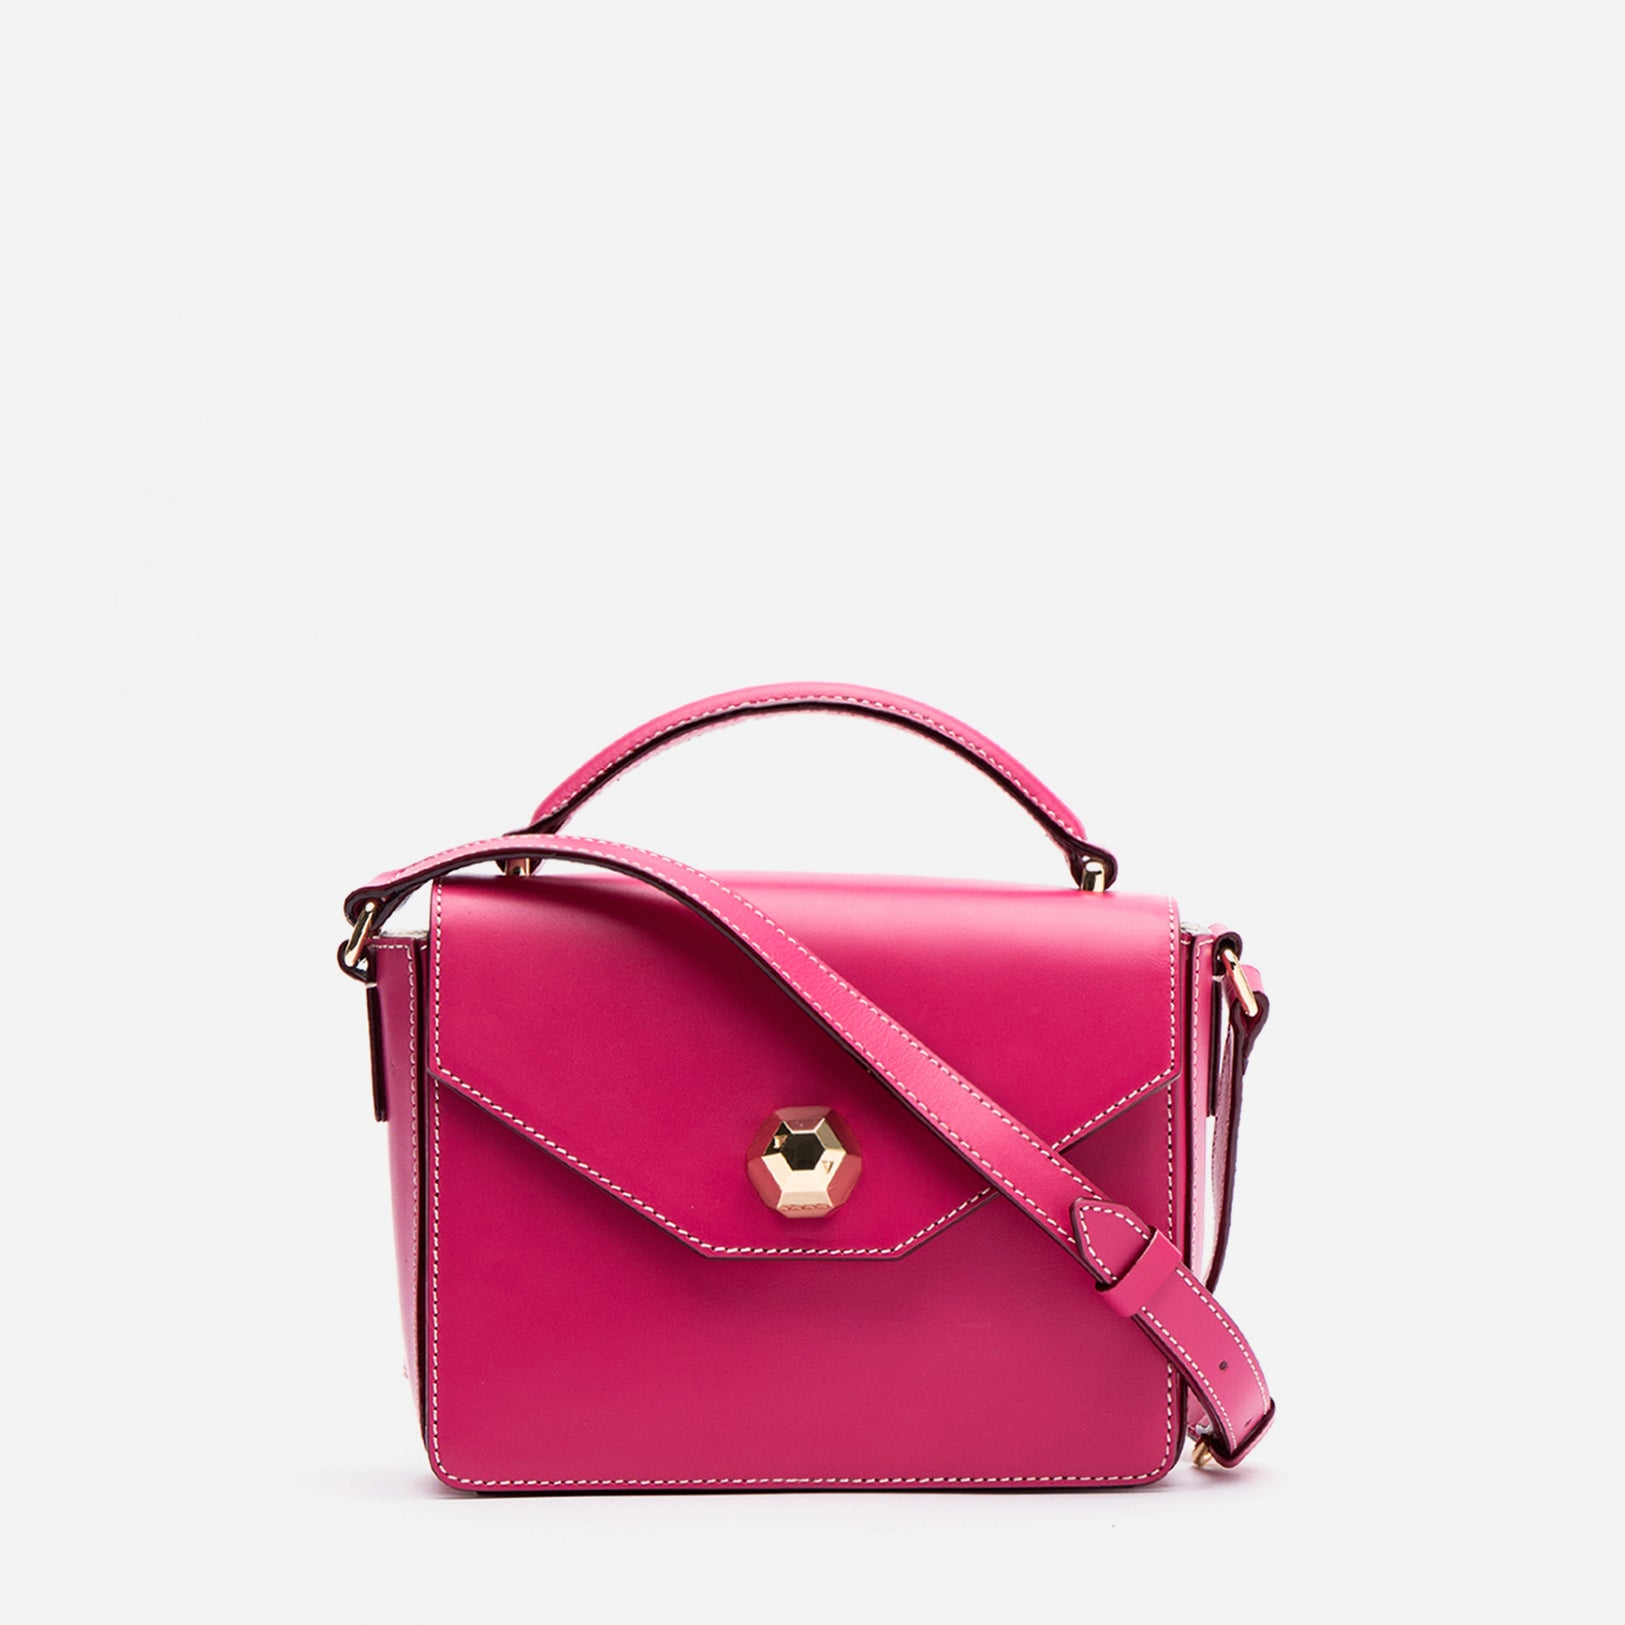 Mini Midge Vachetta Leather Bright Pink - Frances Valentine